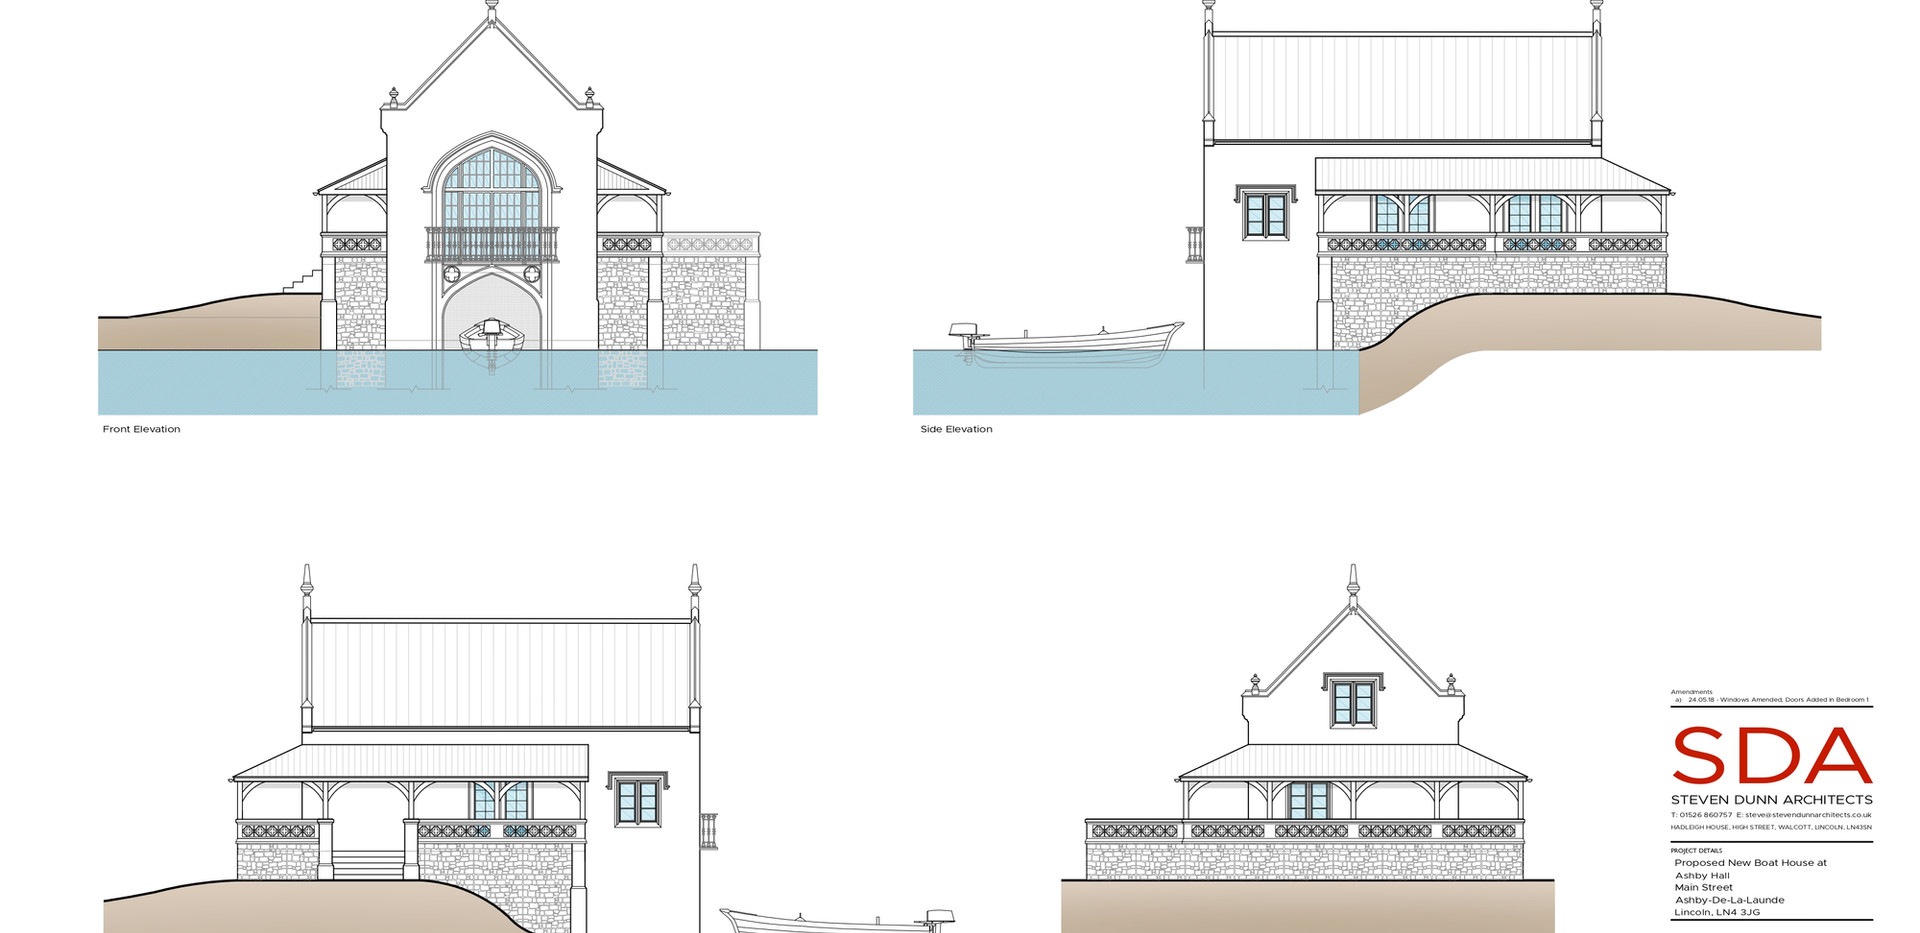 06a - Proposed Elevations_page-0001.jpg